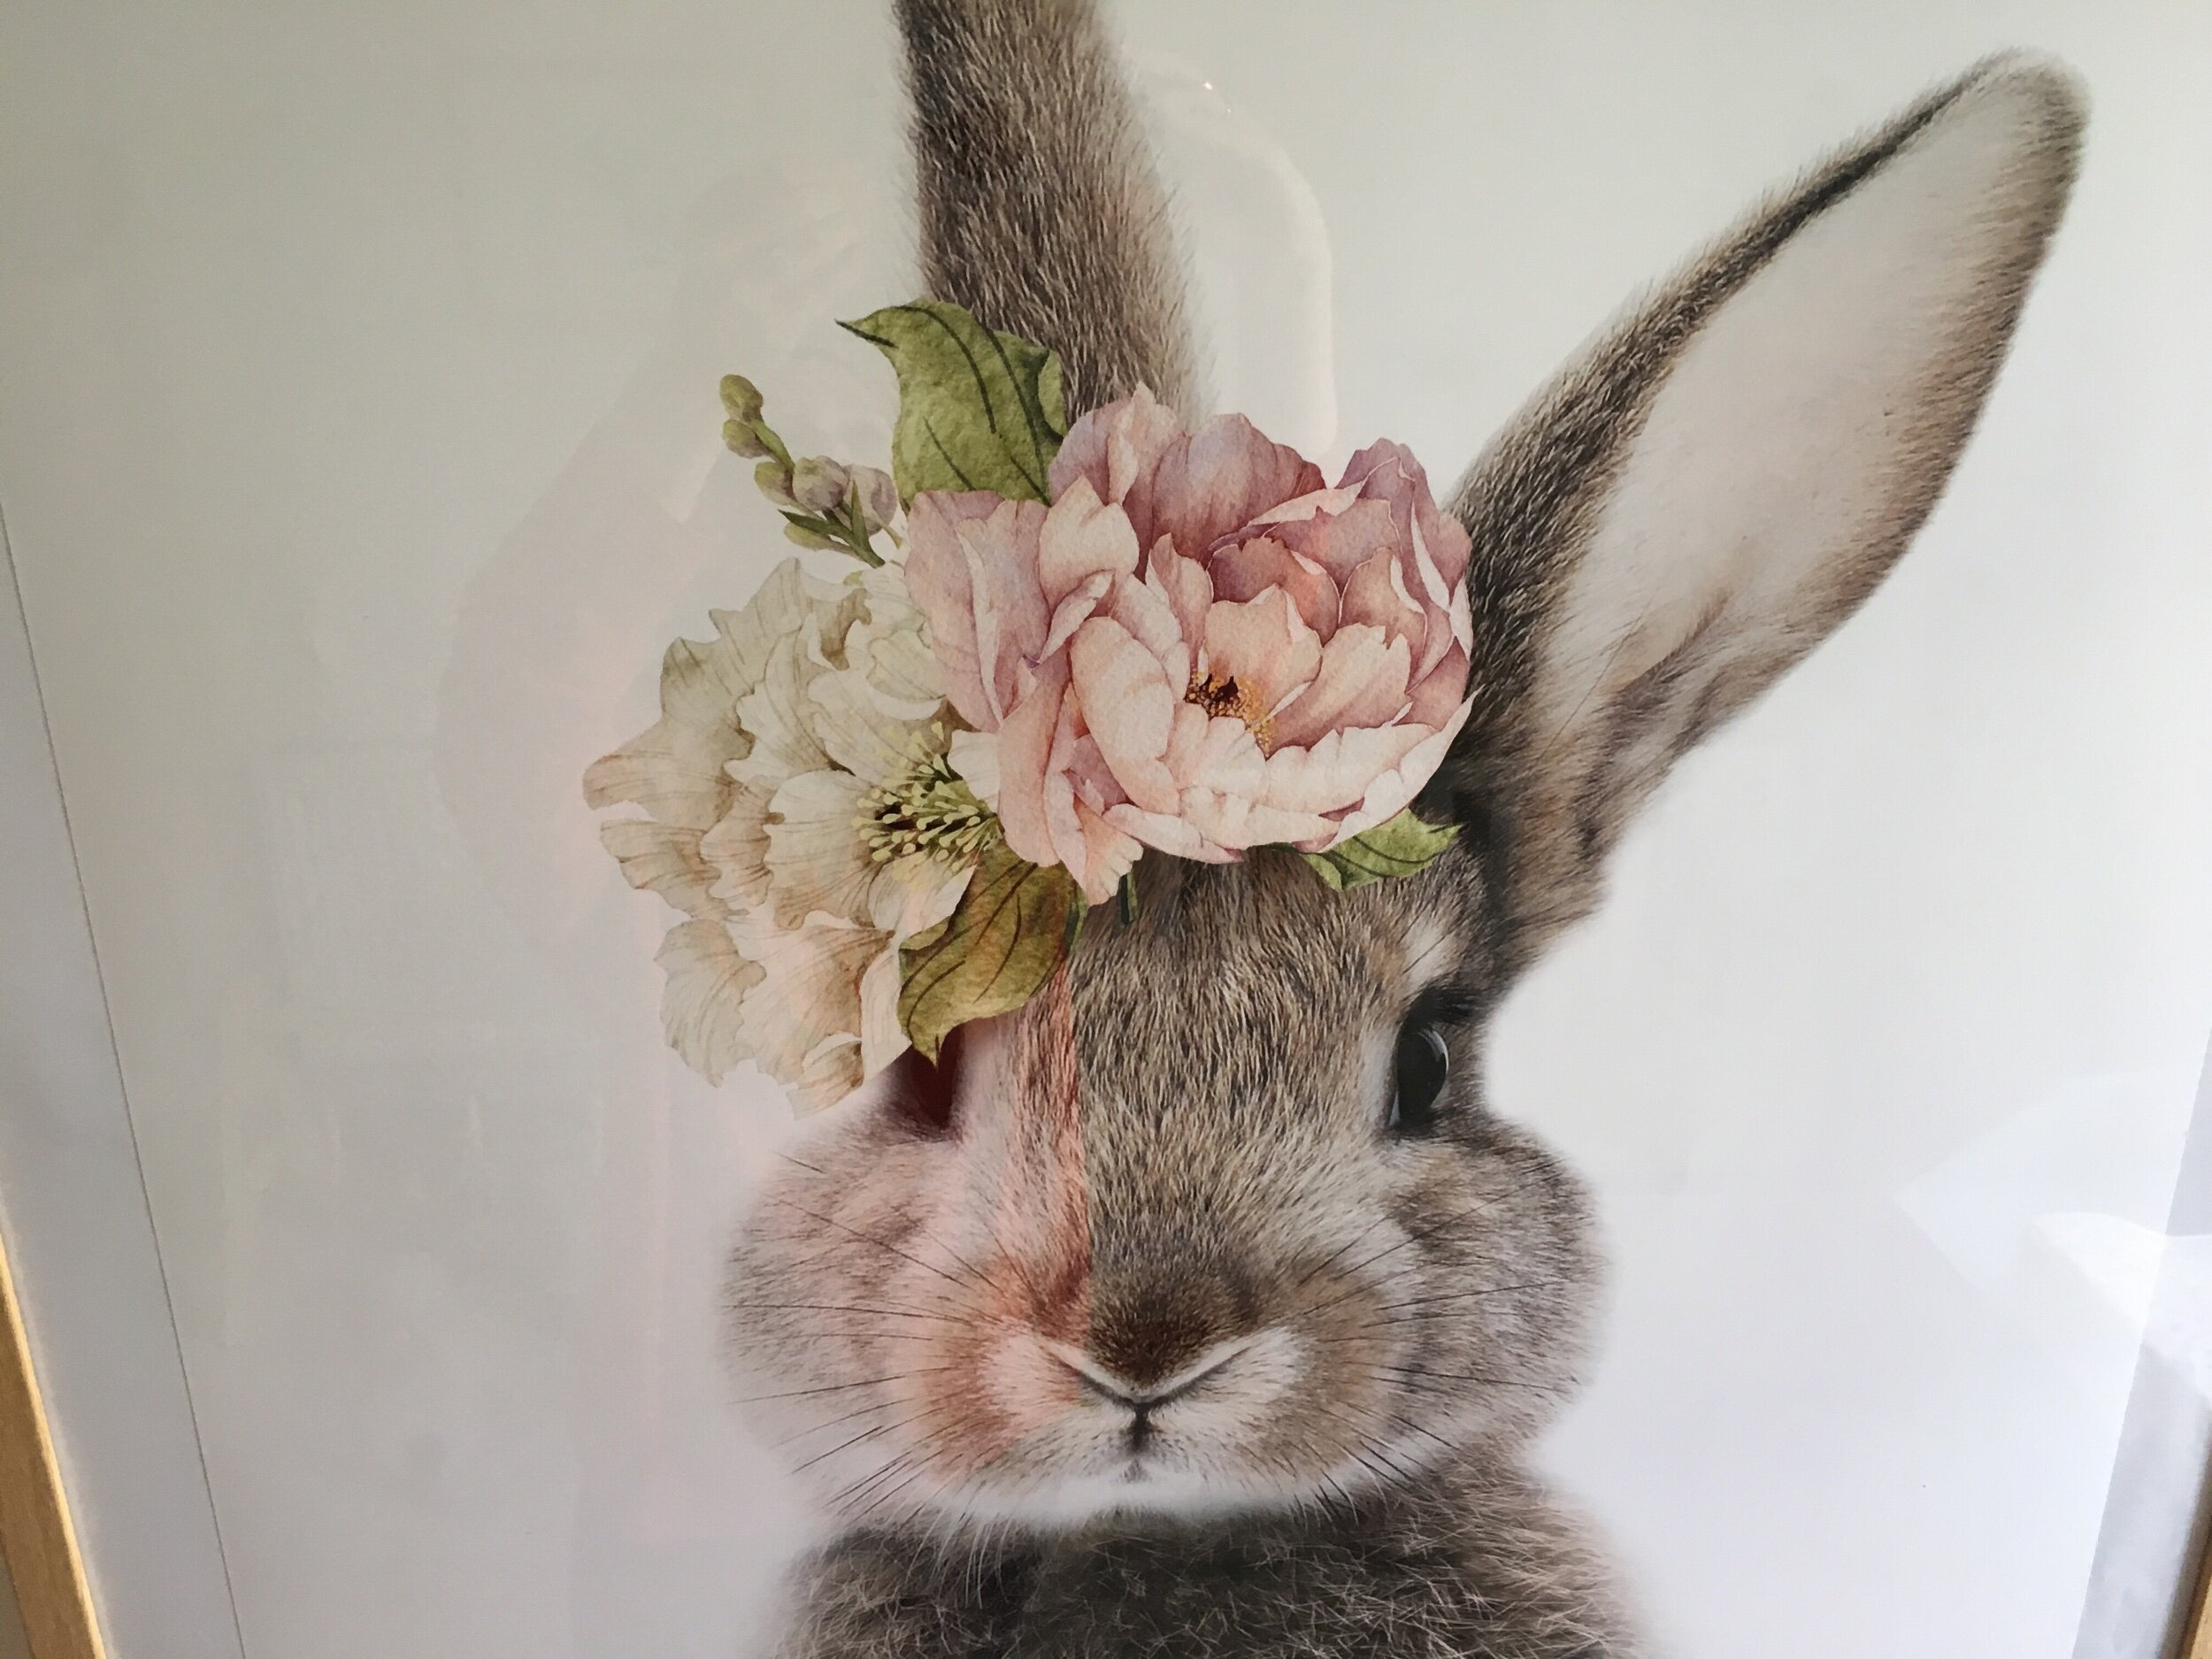 Who couldn't fall in love with this incredible bunny print from Etsy? Not only is it fabulously feminine but you can also buy it as a set (the other image is of the bunny's cotton tail!)